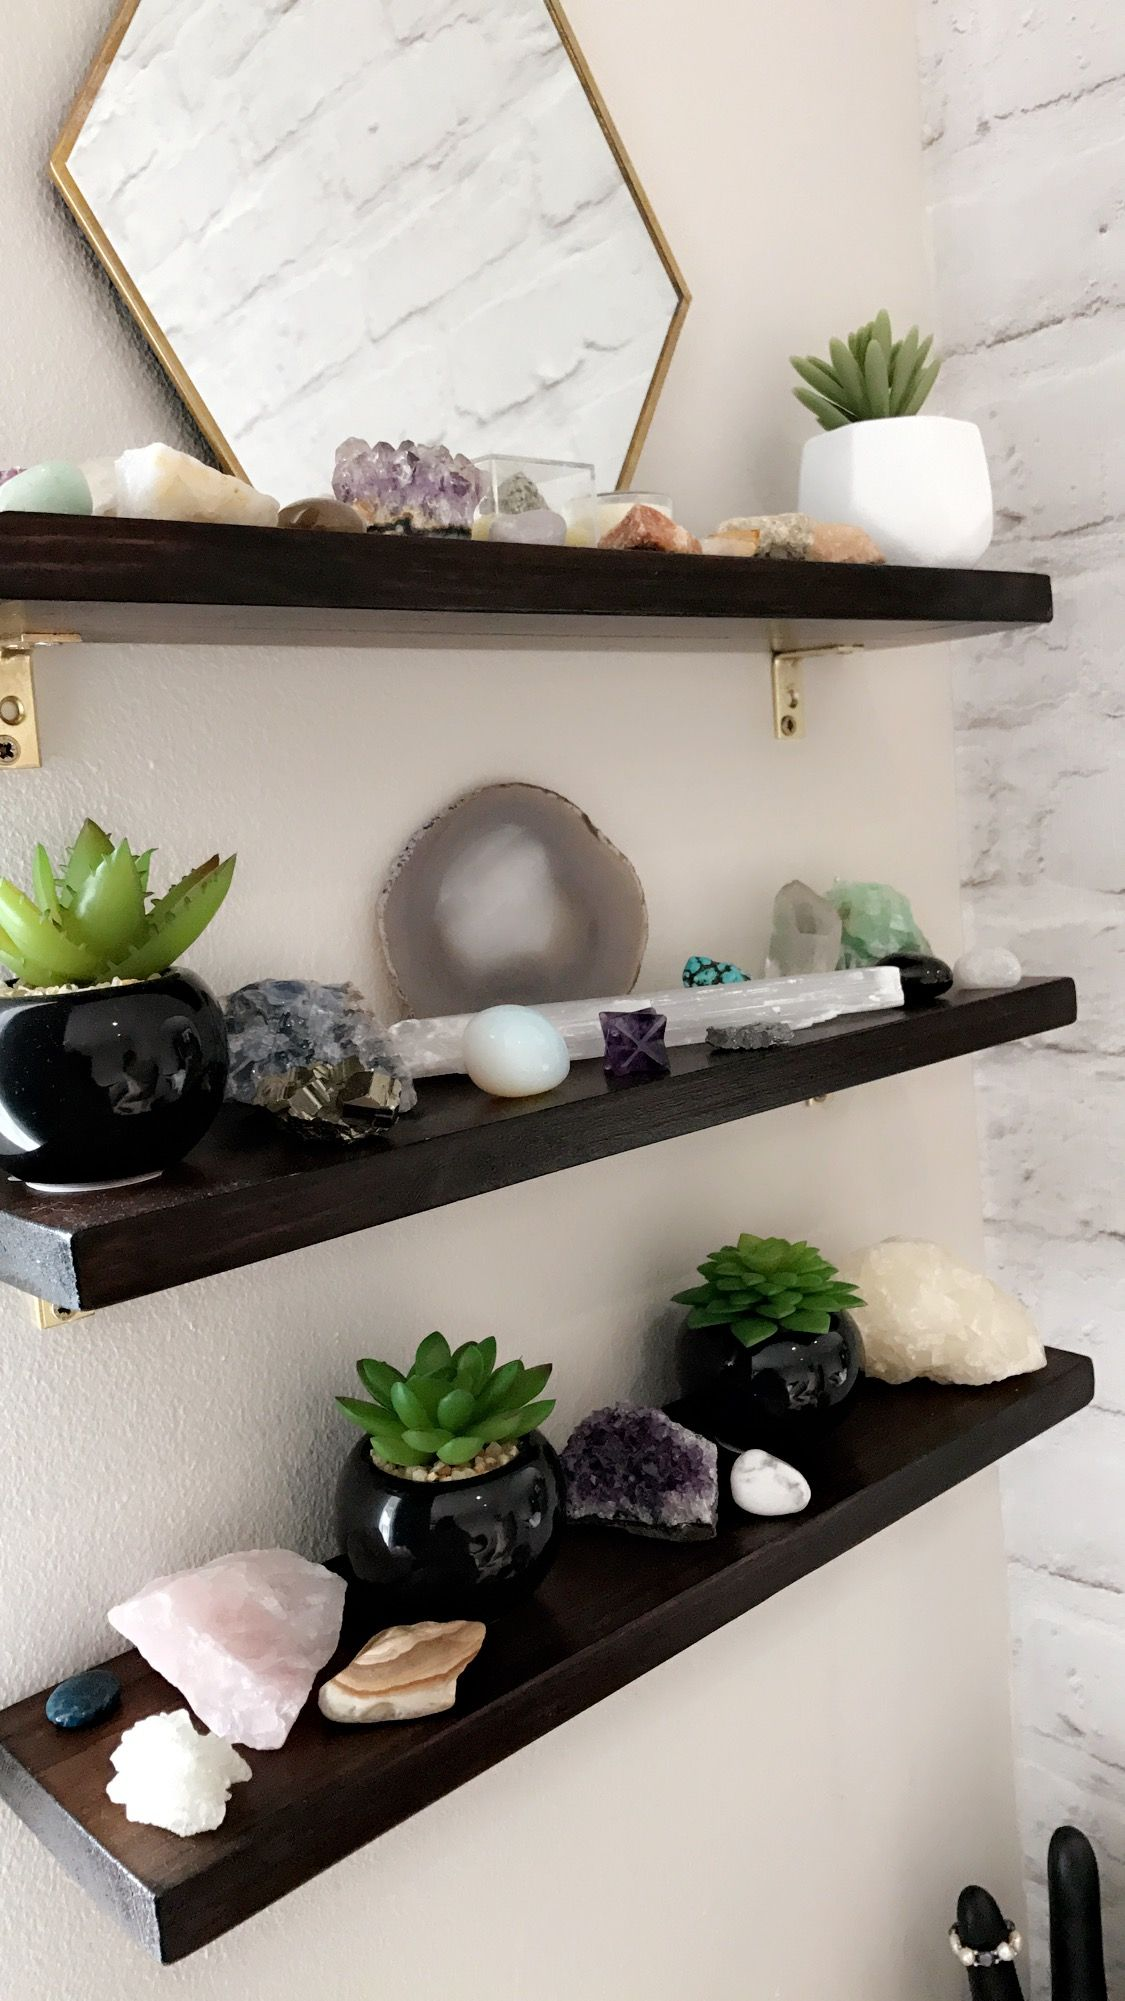 Diy Shelve Made For My Crystal Collection Home Decor Inspiration Floating Shelves Diy Crystal Decor